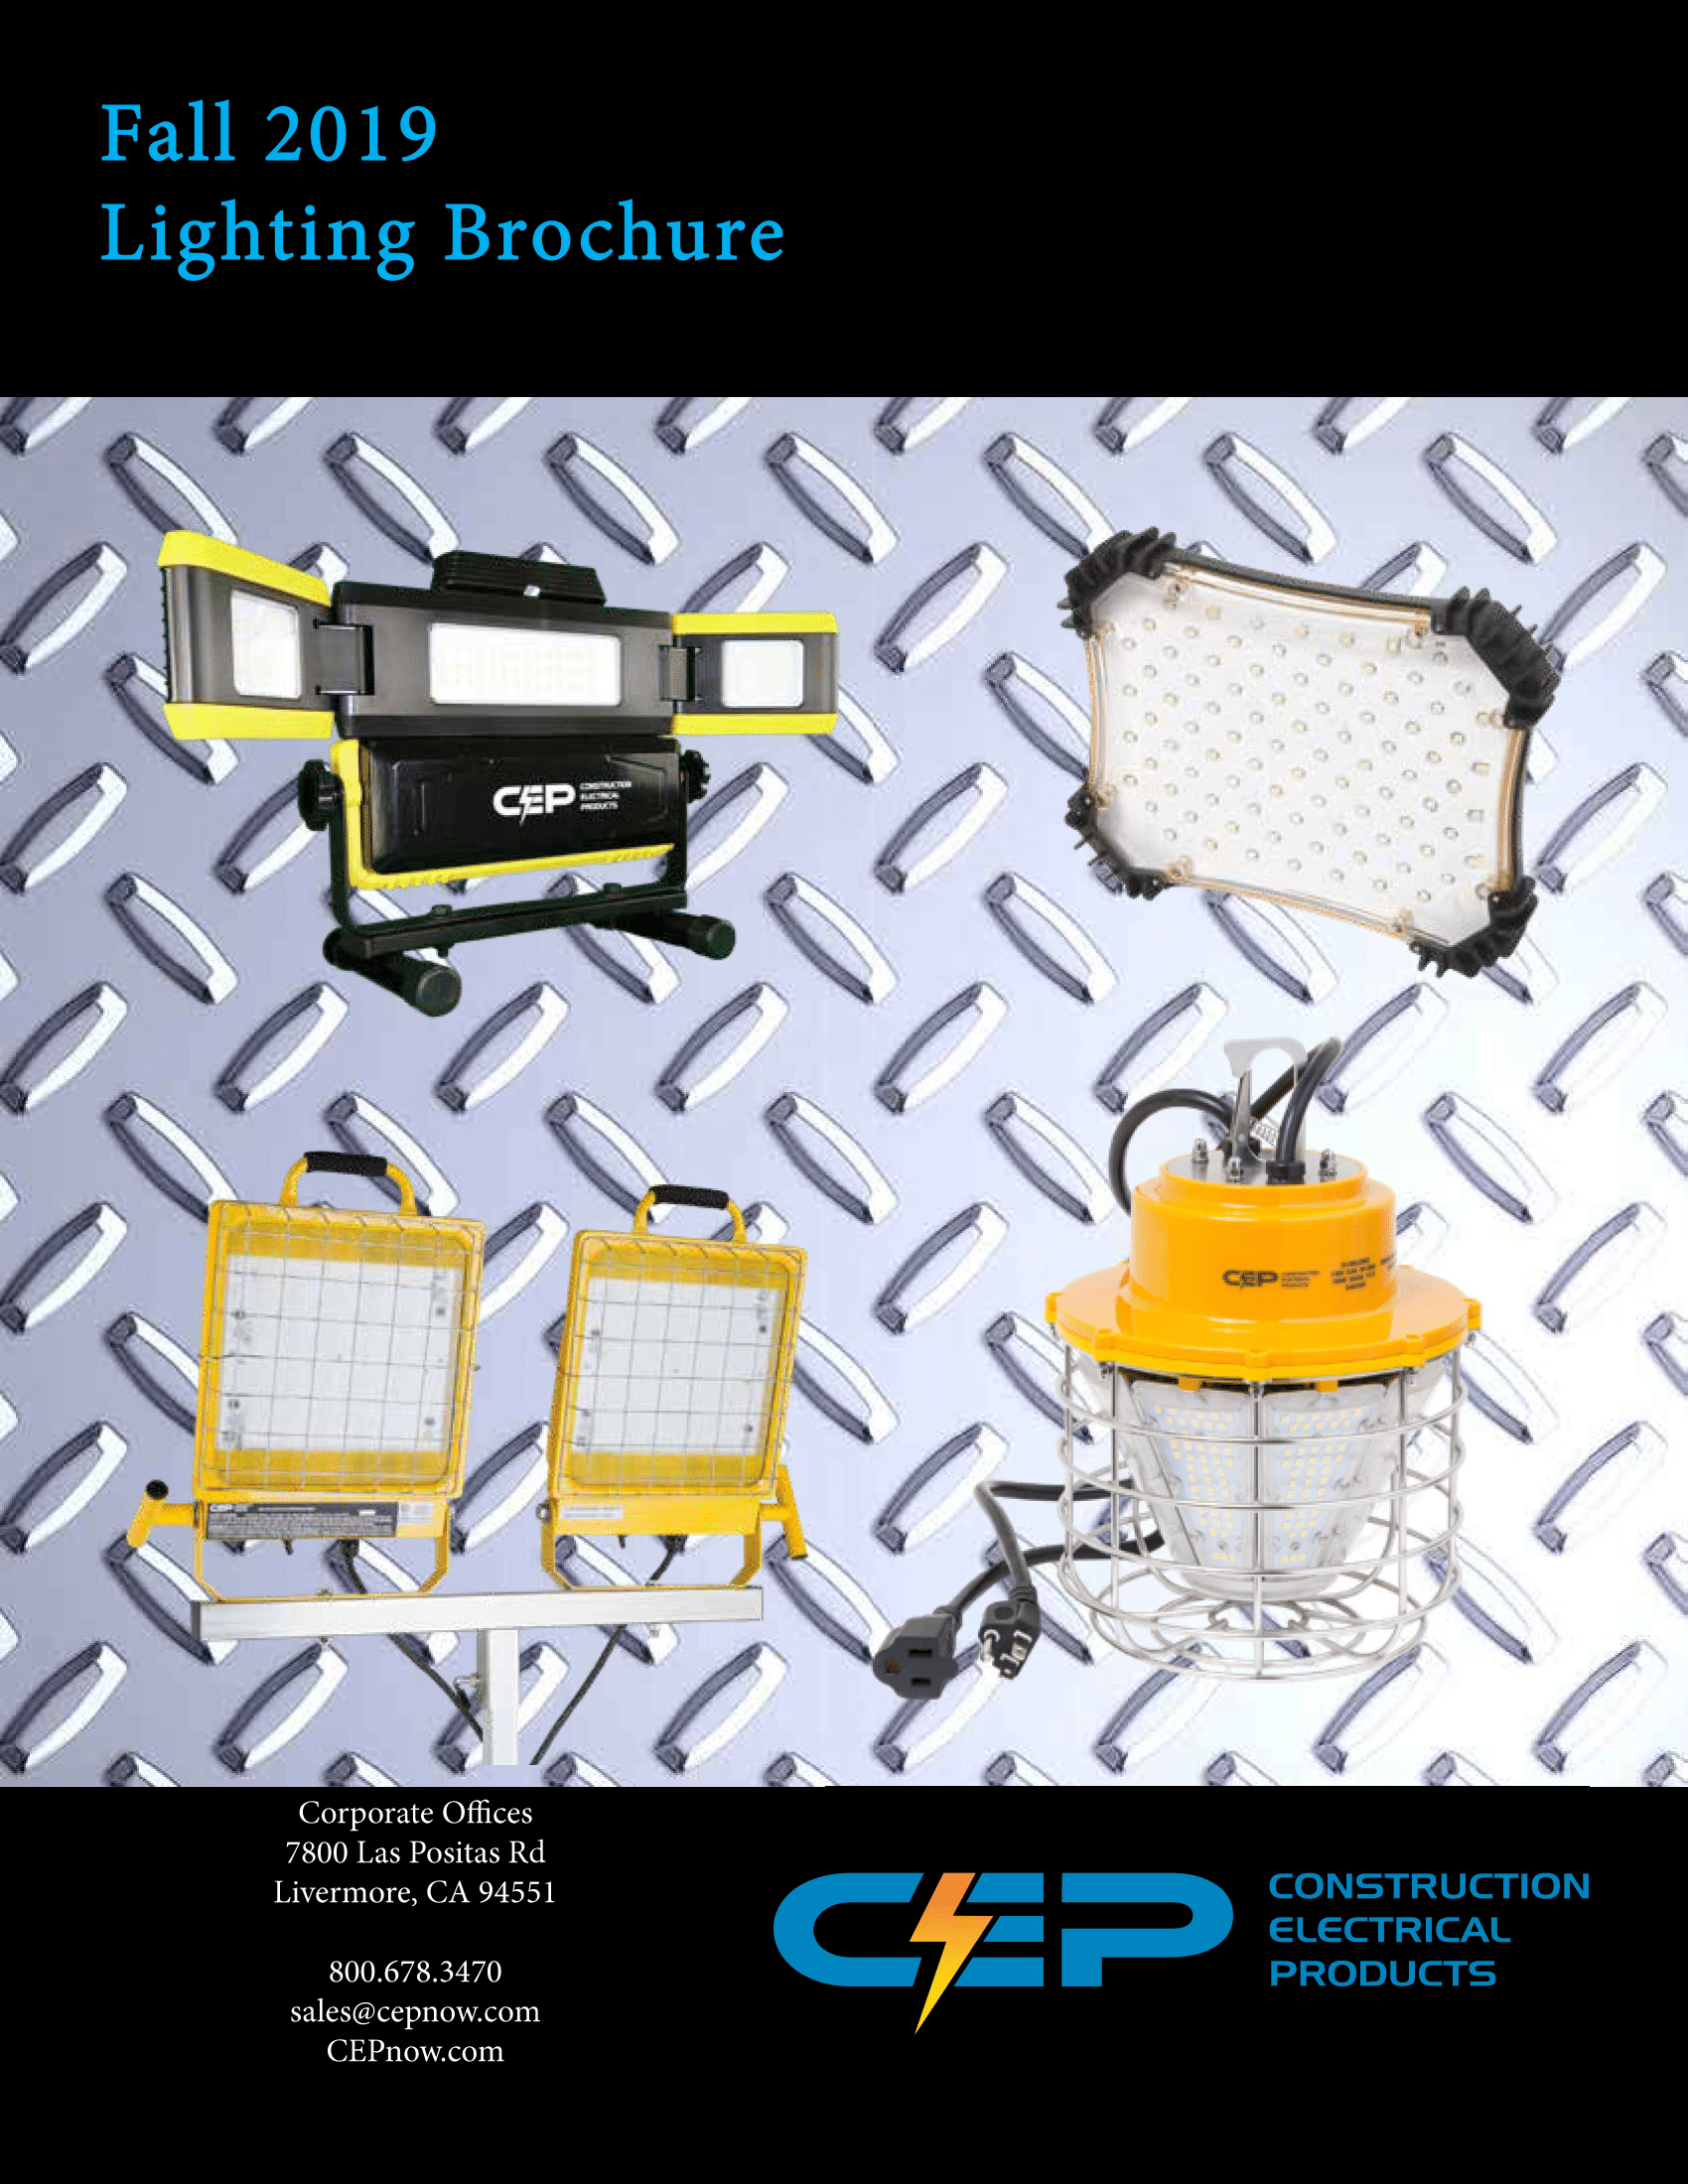 Download our NEW Fall 2019 Lighting Brochure